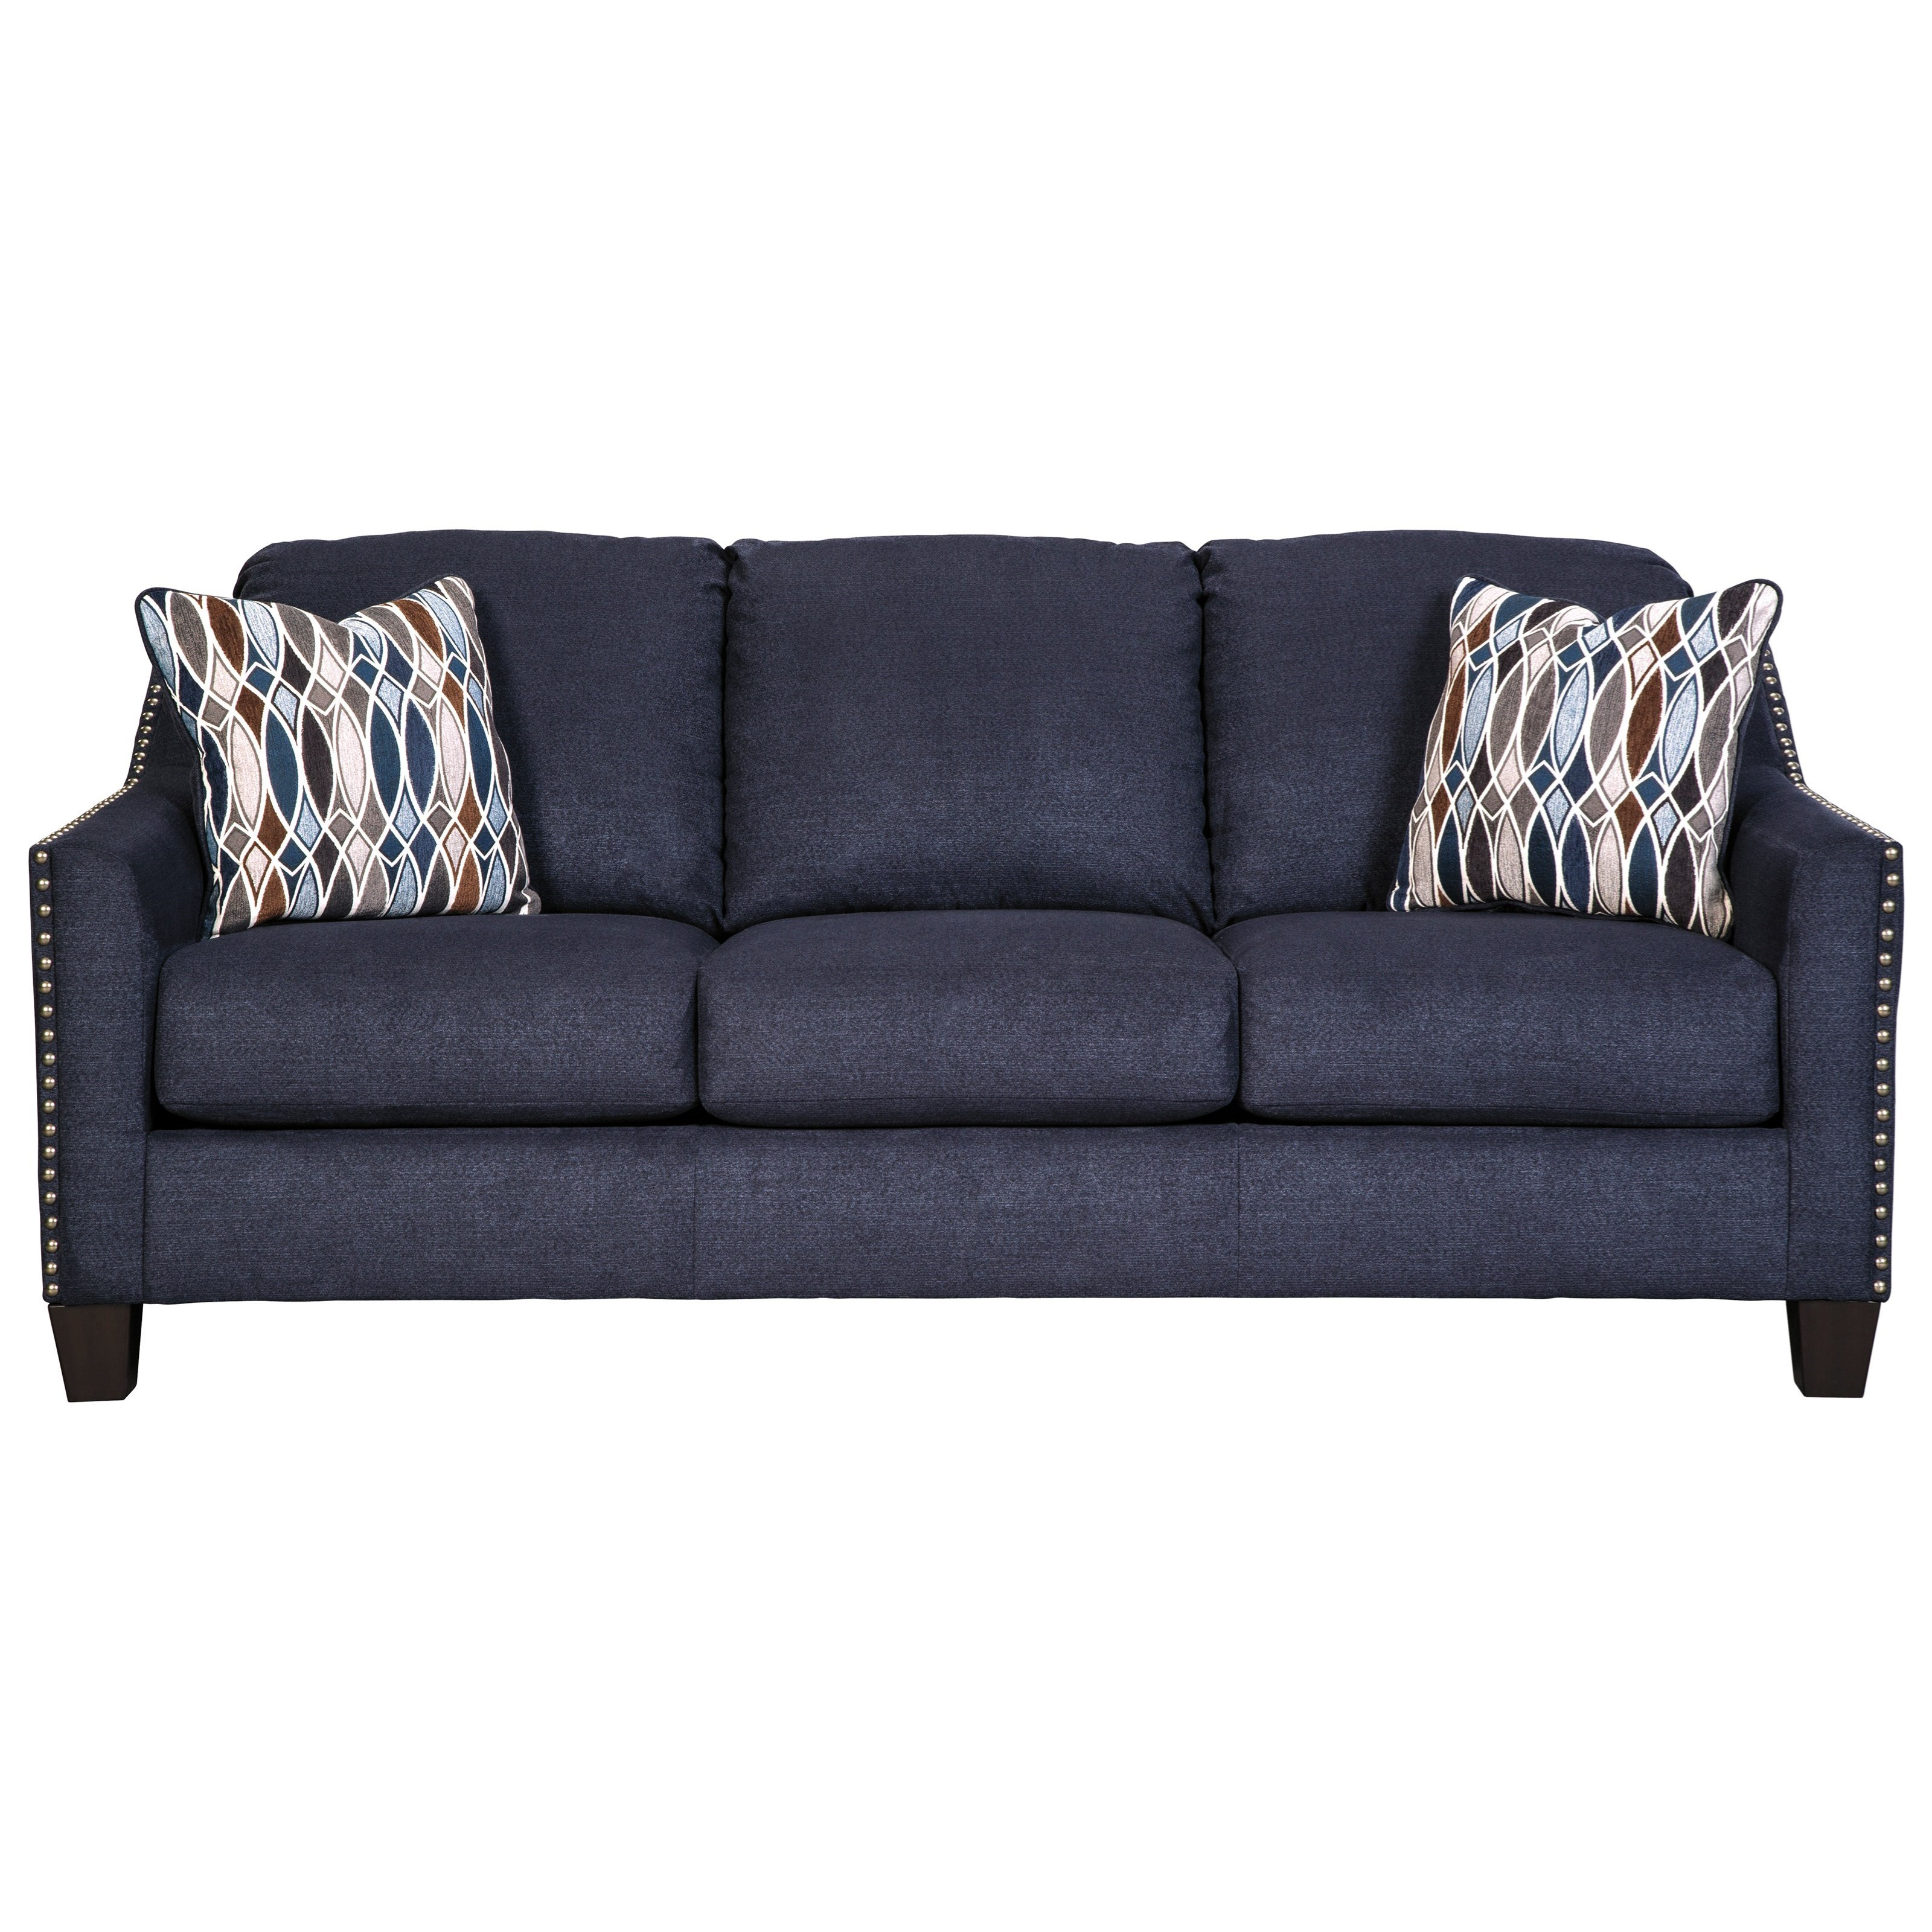 Benchcraft Creeal Heights Sofa - Item Number: 8020238